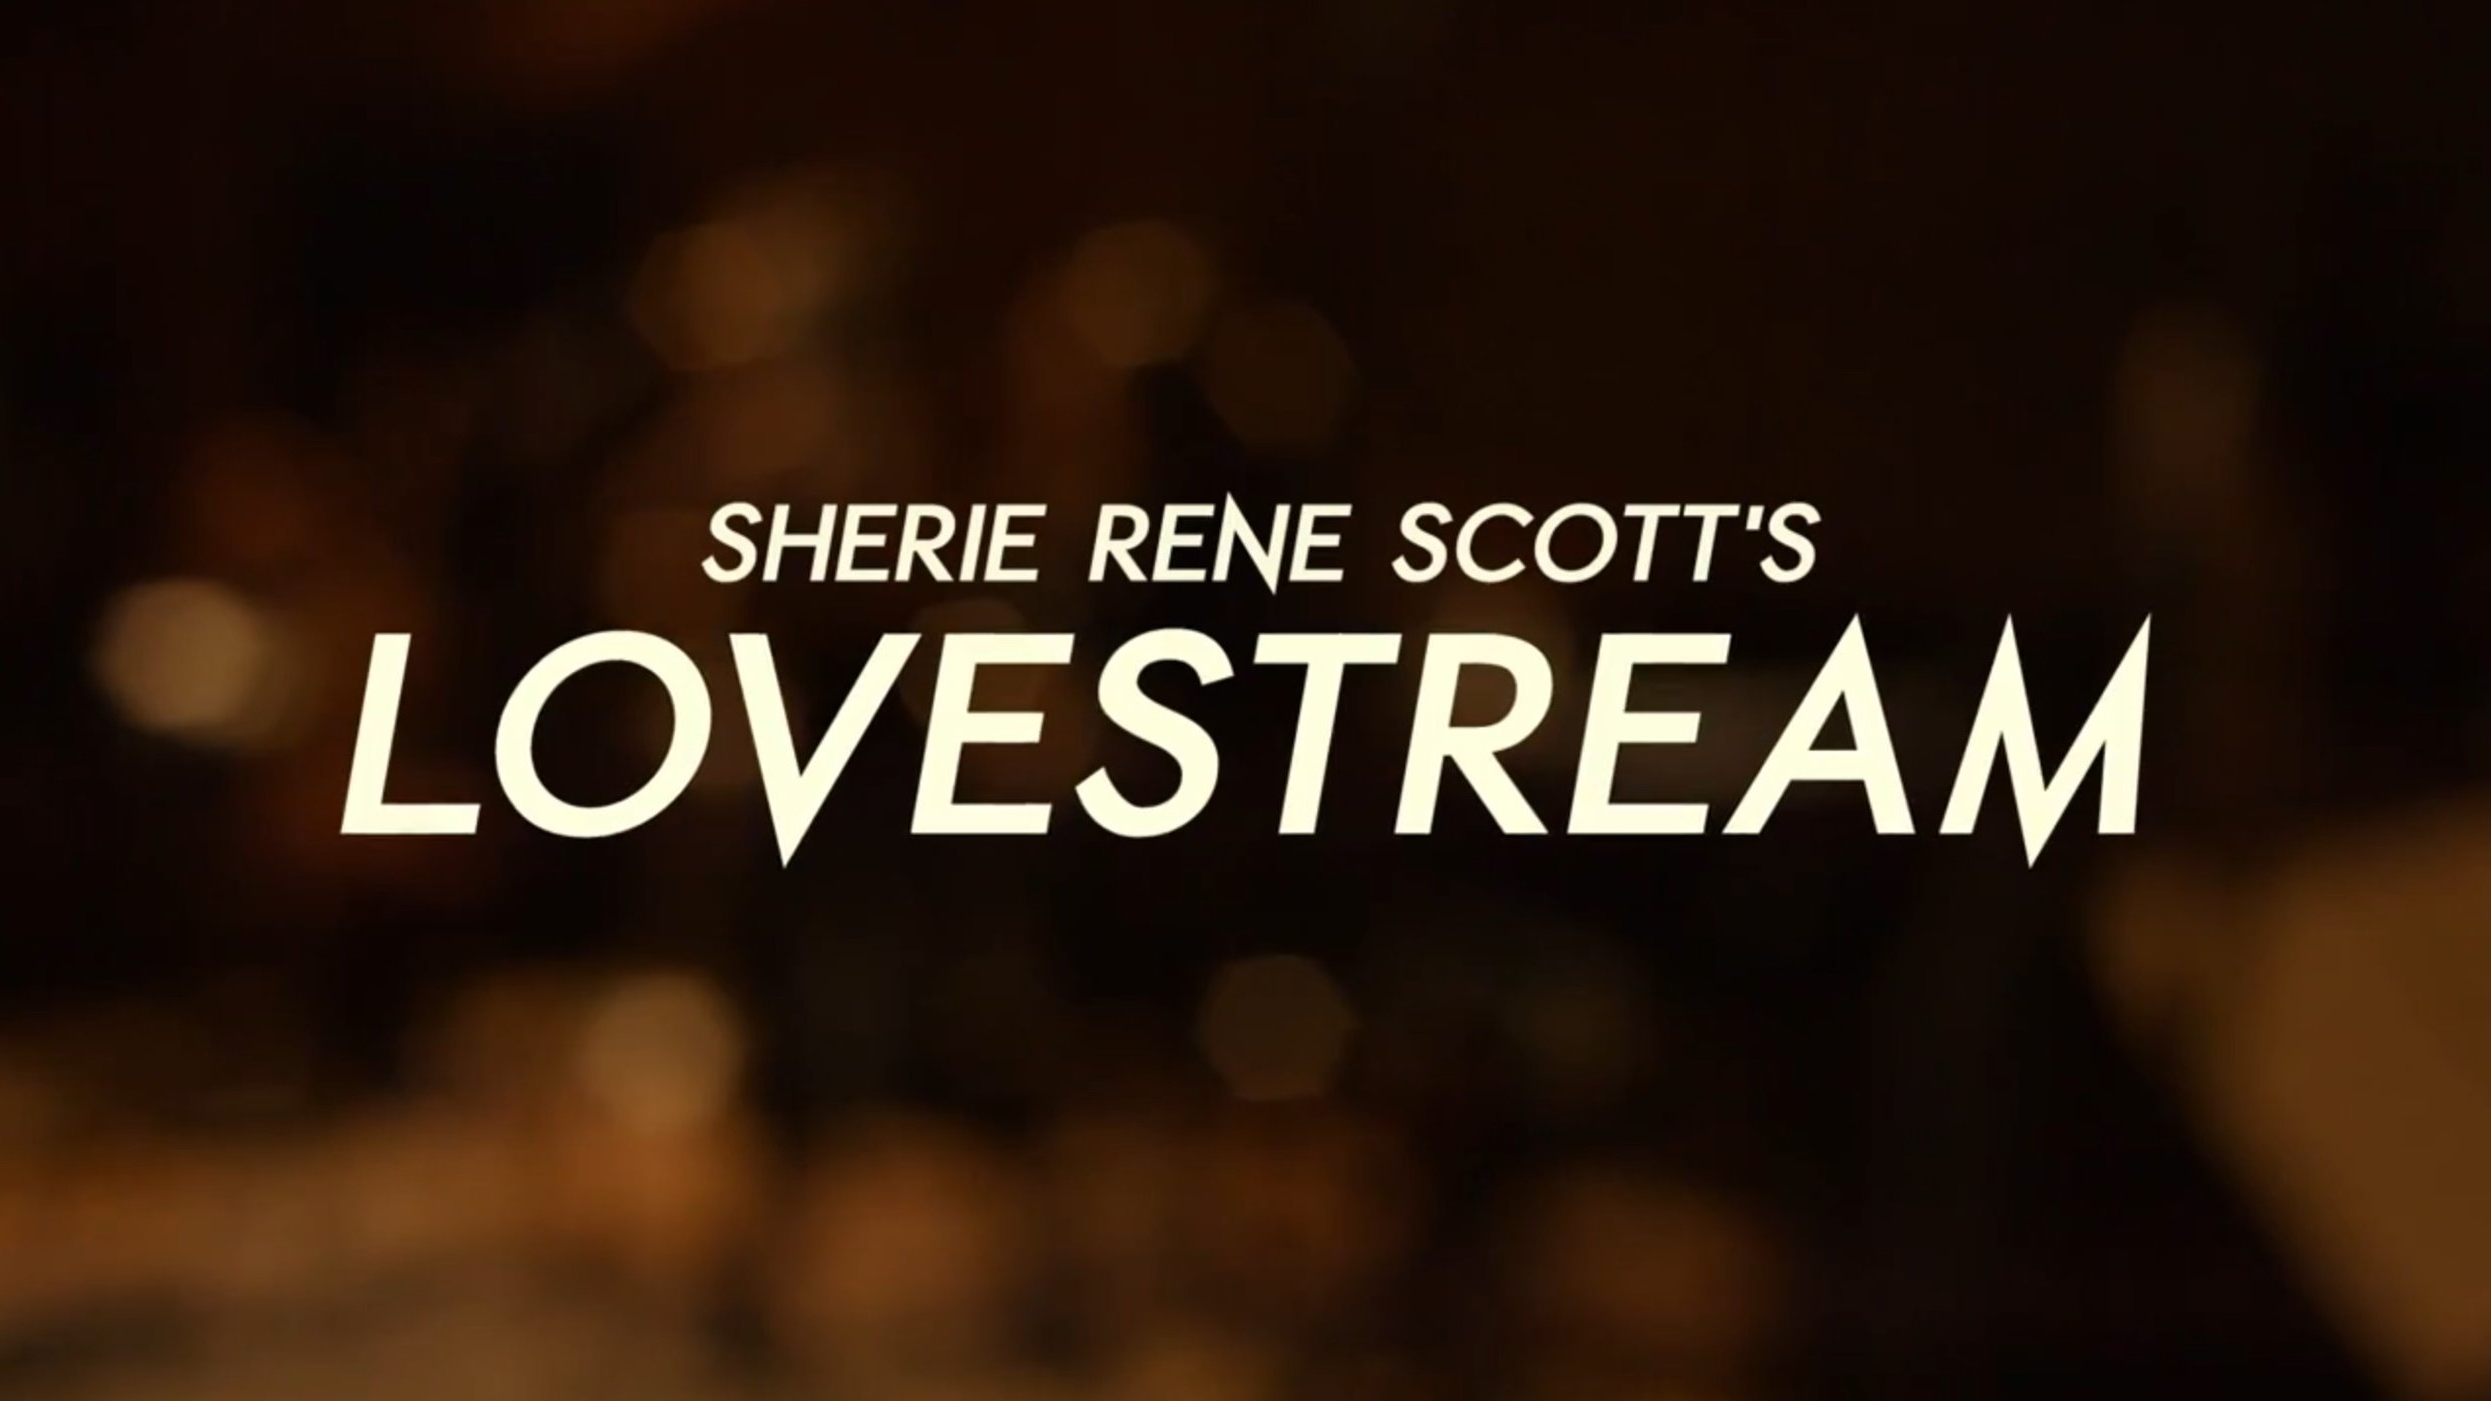 SHERIE RENE SCOTT'S LOVESTREAM - CONCERT FILM